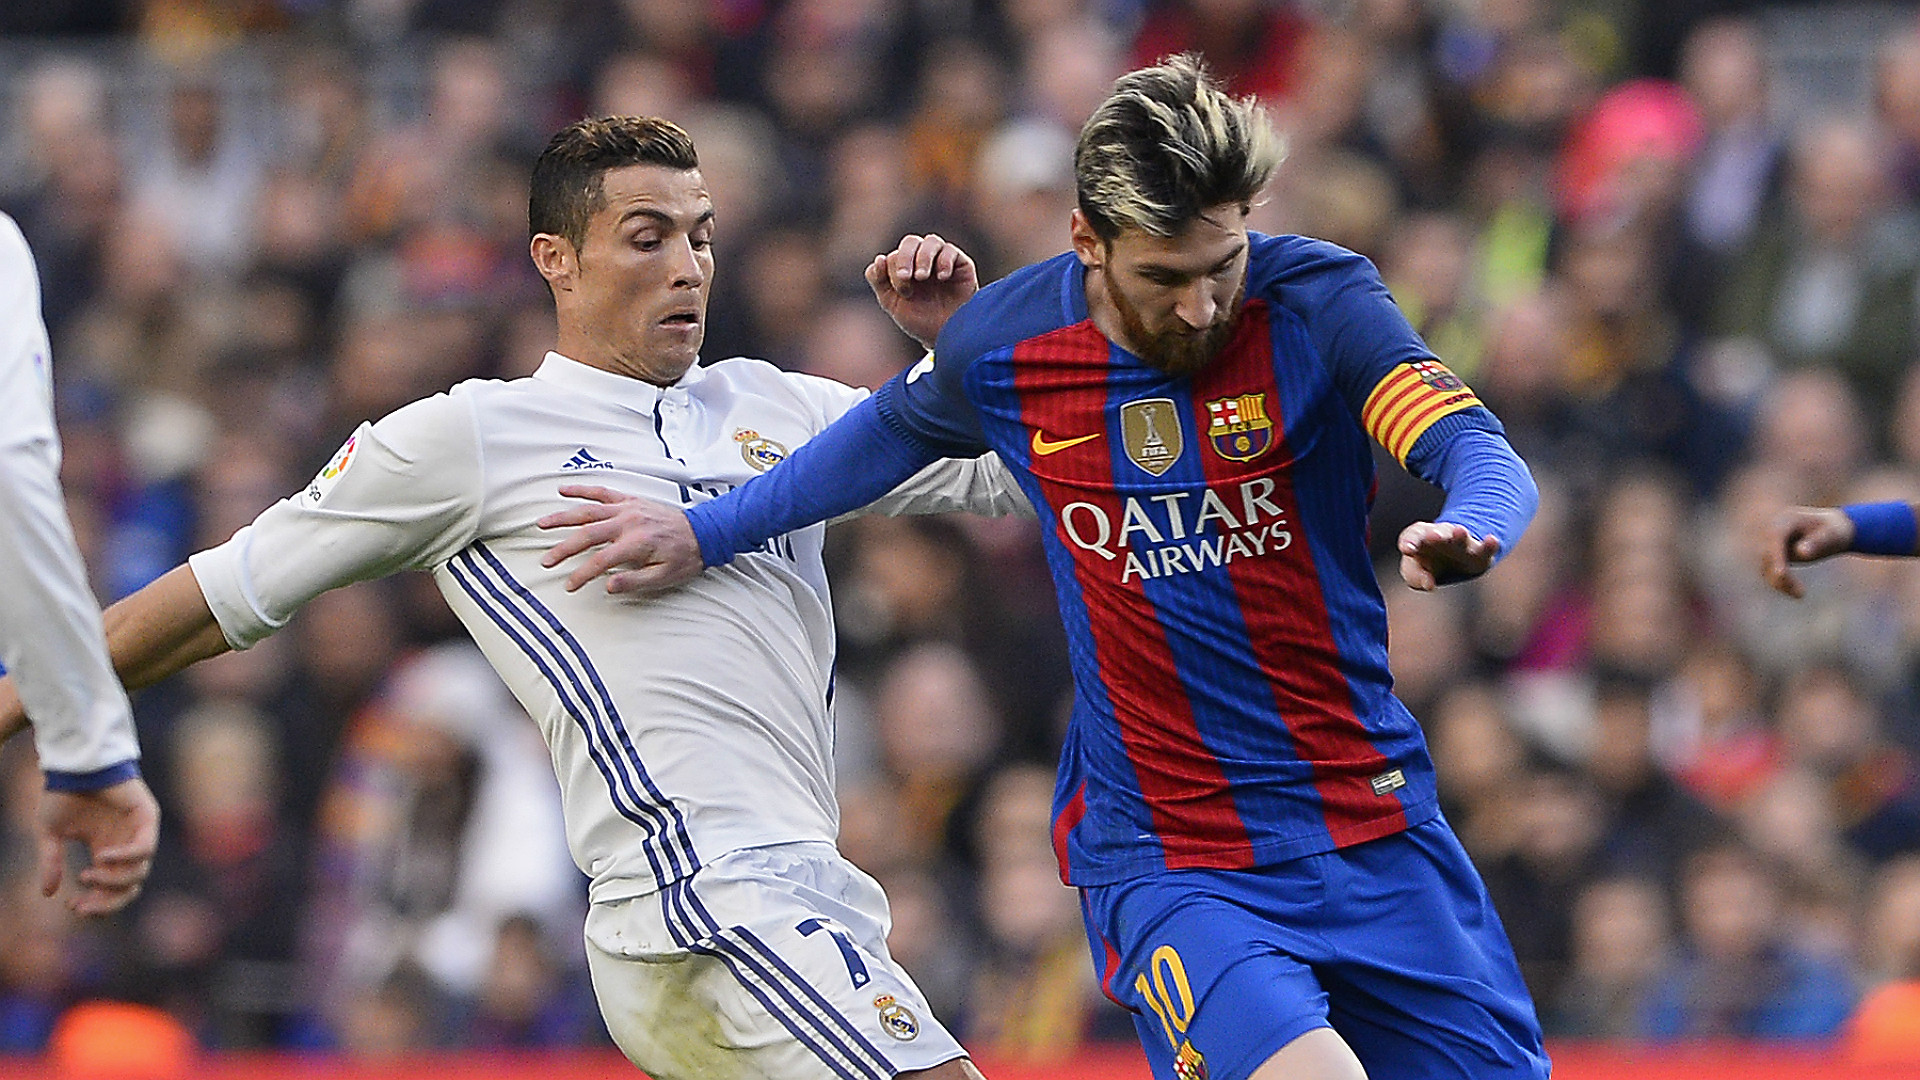 Ronaldo vs Messi in El Clasico - Who has the best stats 0c9a50f4f